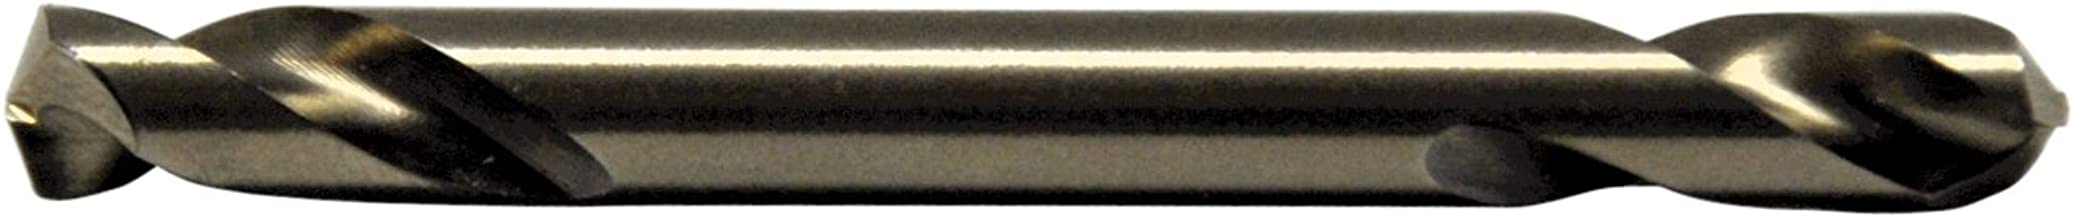 product image for KnKut KK2-7/32 7/32-Inch Fractional Double End Drill